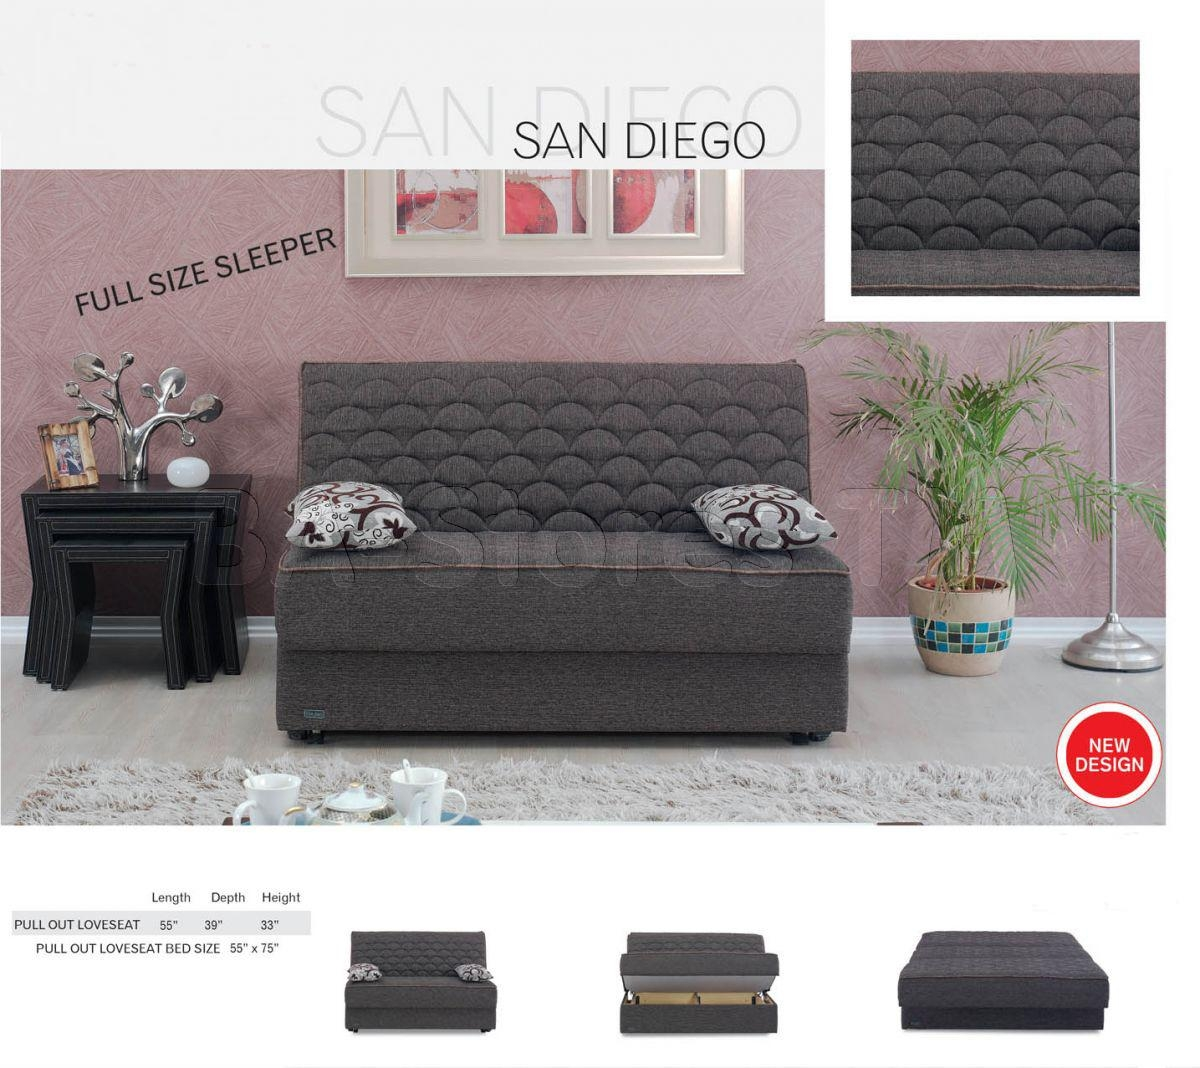 Sofa Beds: San Diego Armless Sleeper Sofa Bed San Diego Sofa/7 Intended For Sleeper Sofas San Diego (View 18 of 20)